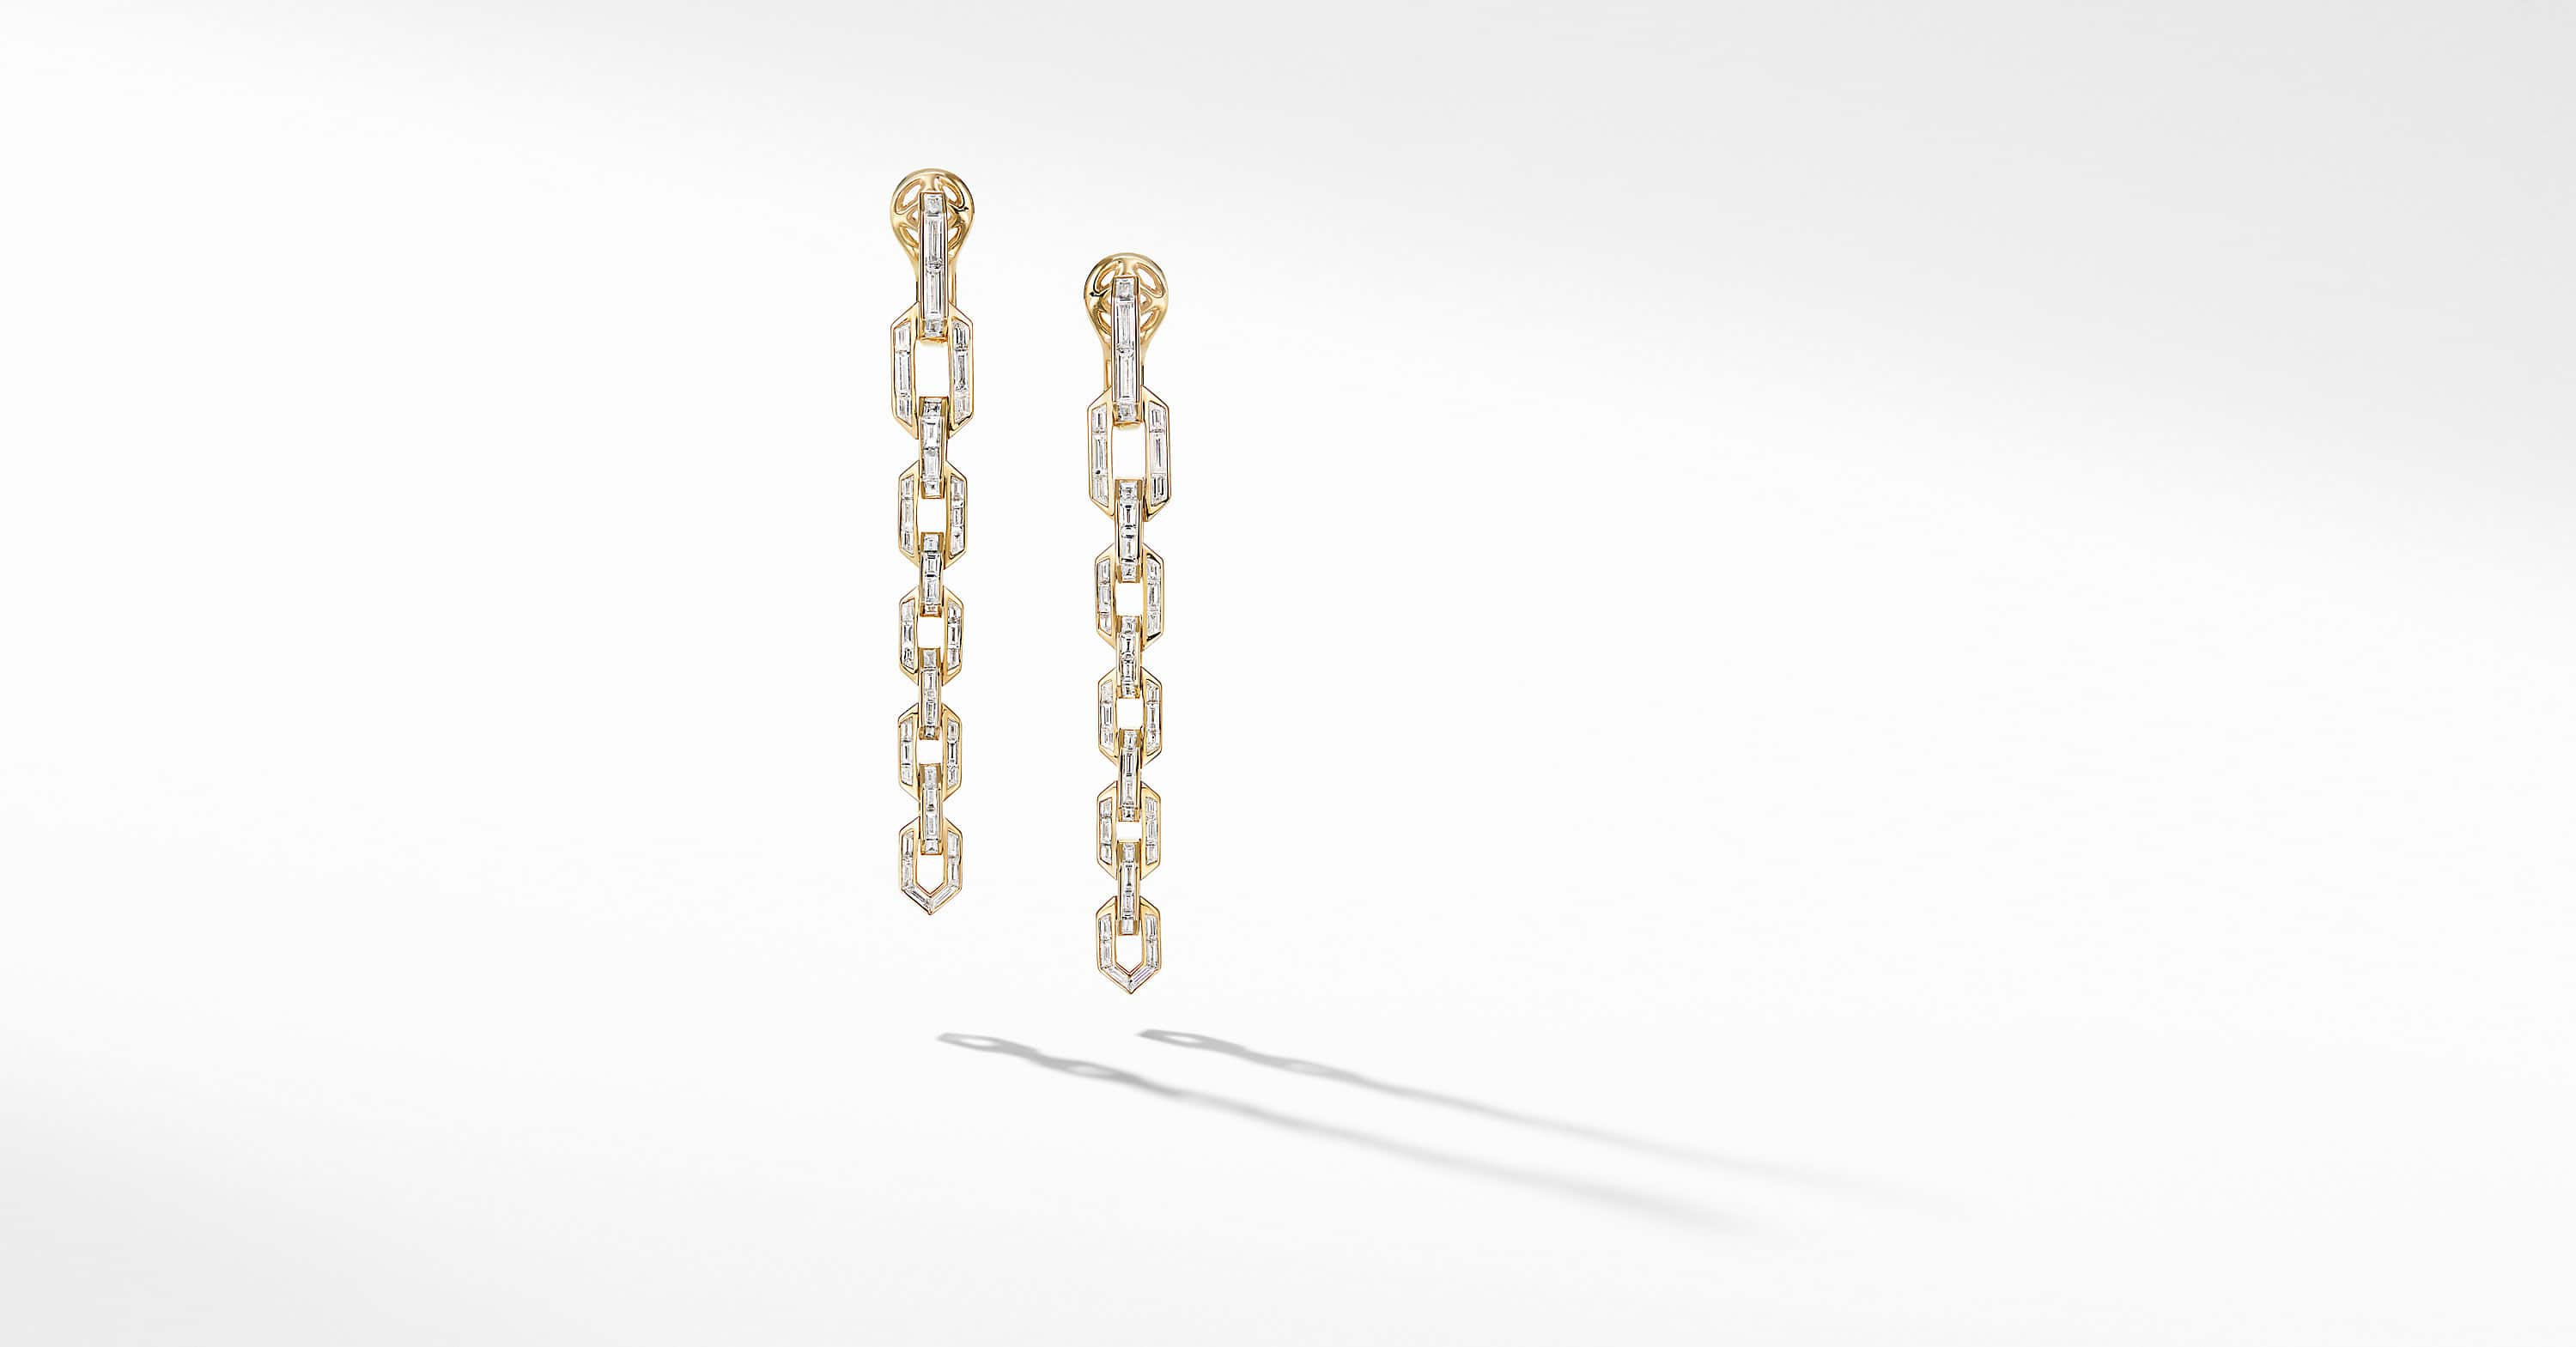 Stax Chain Earrings in Yellow Gold with Diamonds